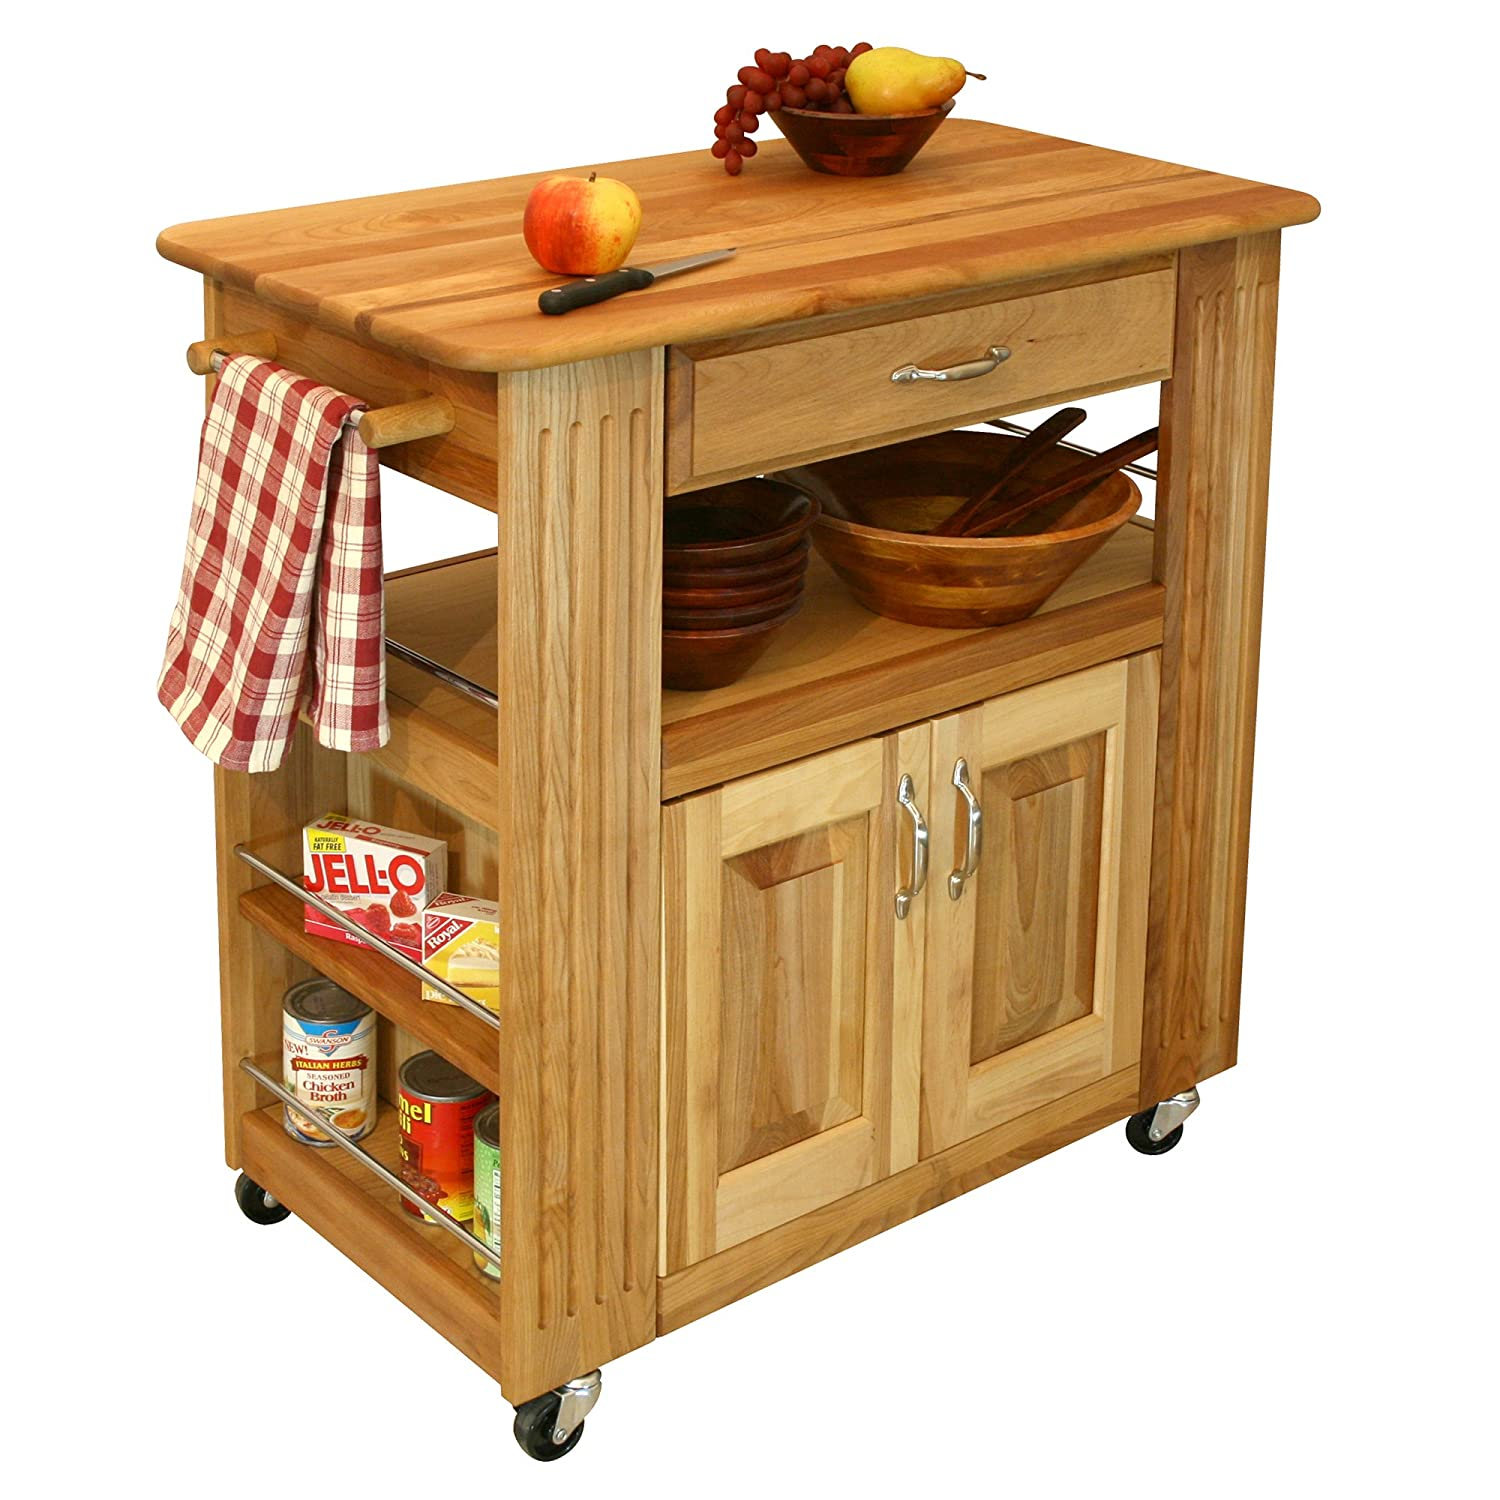 Oak Kitchen Carts And Islands Amazon catskill craftsmen heart of the kitchen island bar amazon catskill craftsmen heart of the kitchen island bar serving carts workwithnaturefo